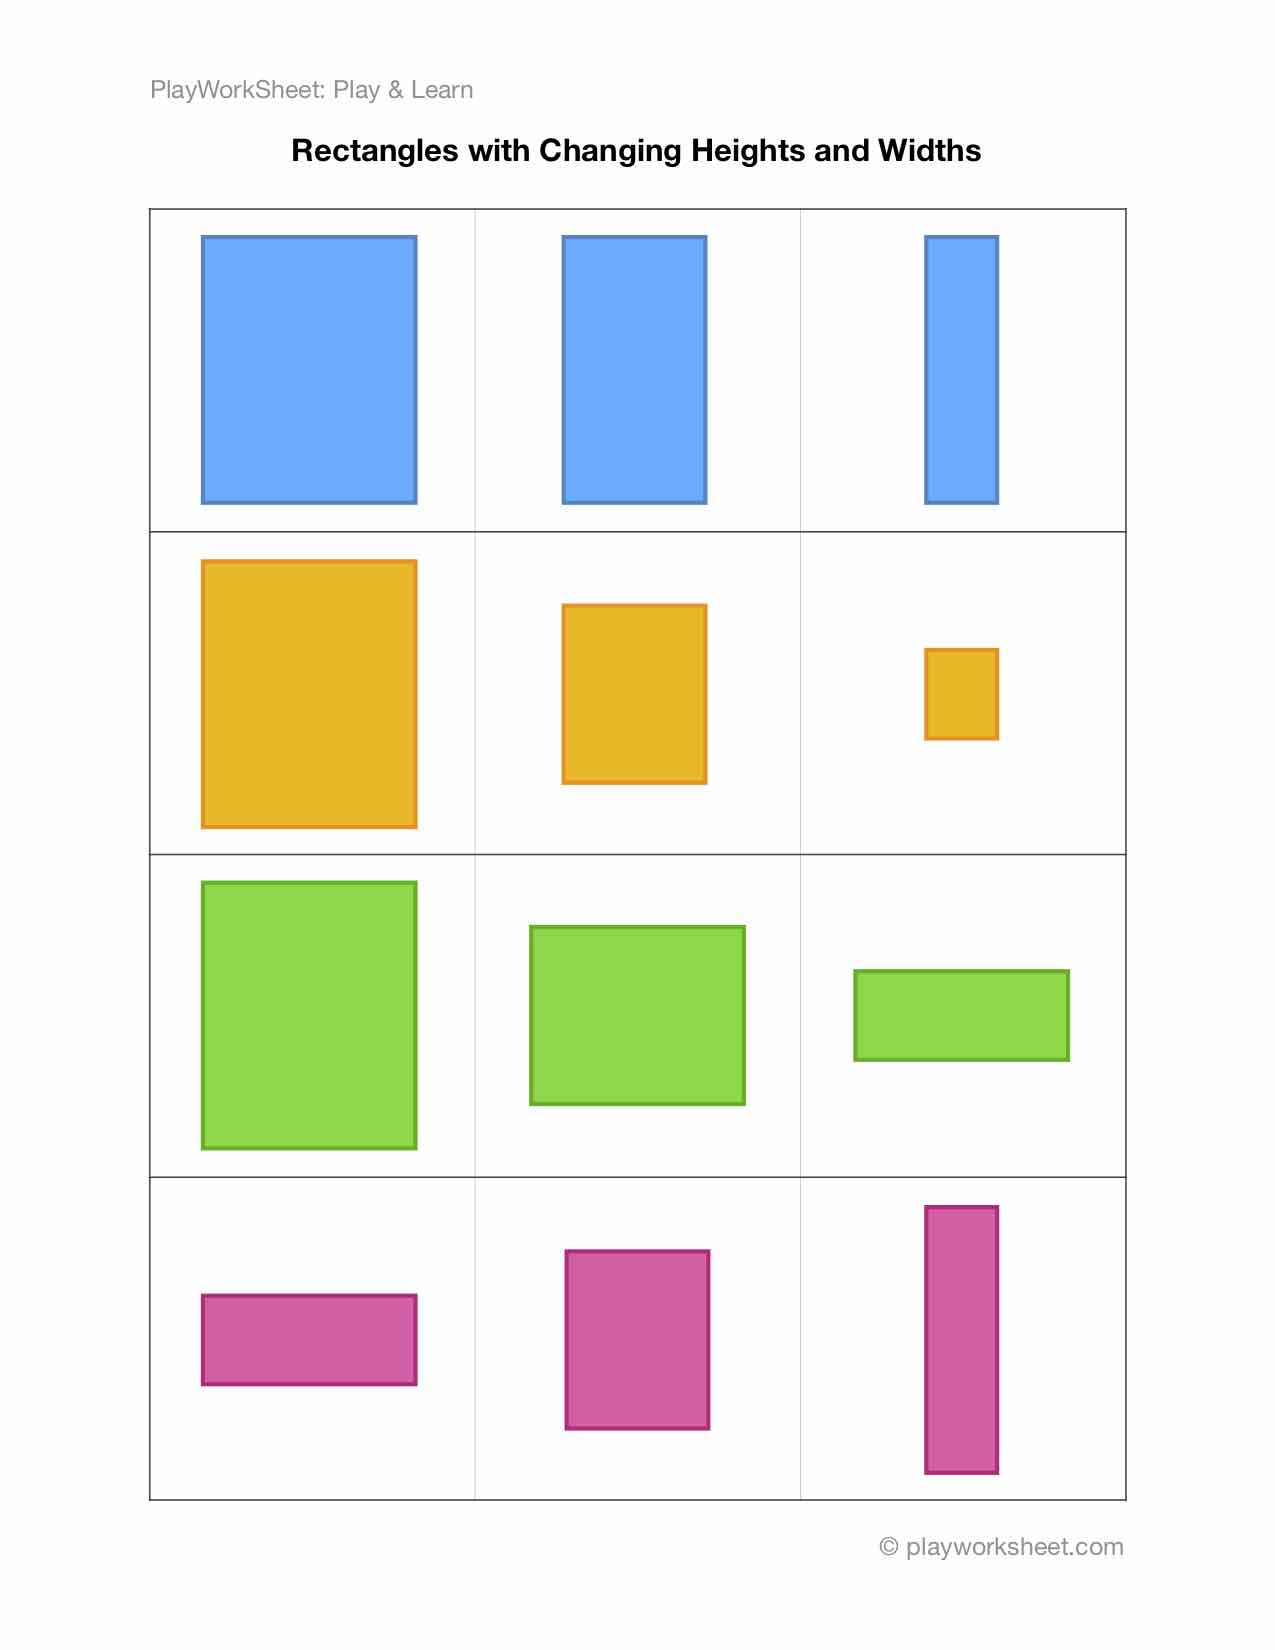 Rectangles With Changing Dimensions In Width And Height